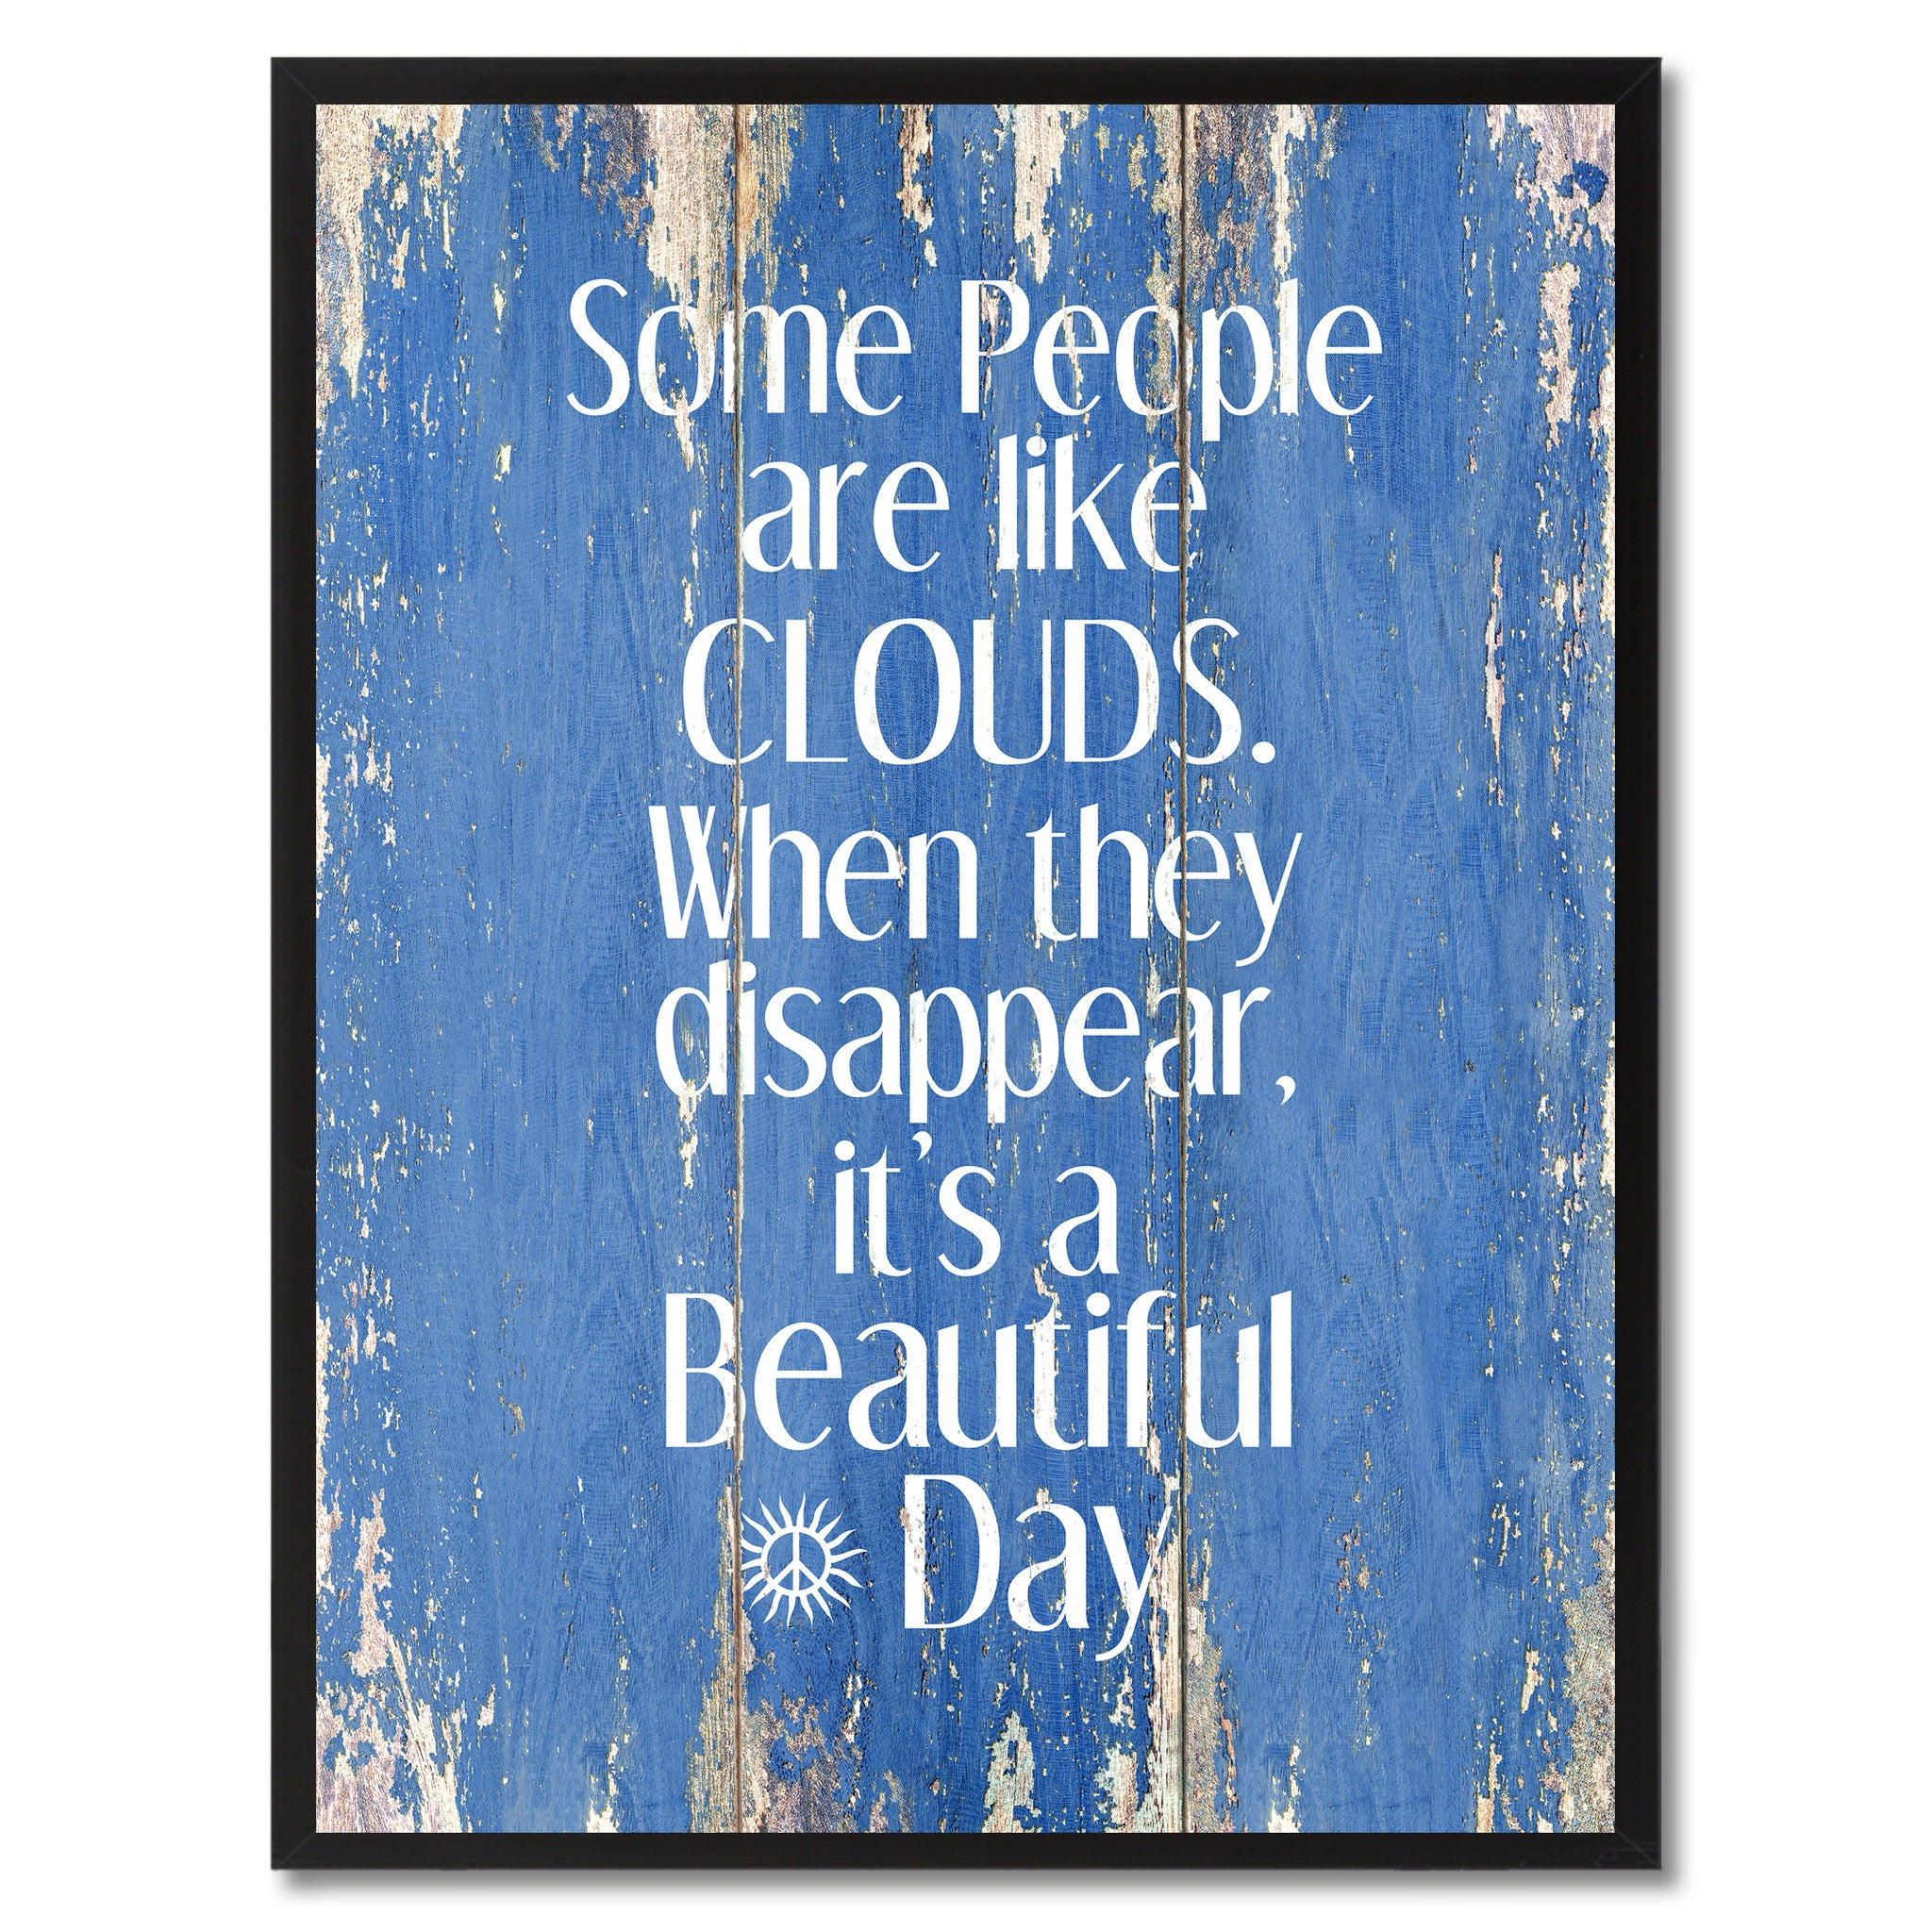 Some People Like Clouds When They Disappear Saying Canvas Print, Black Picture Frame Home Decor Wall Art Gifts